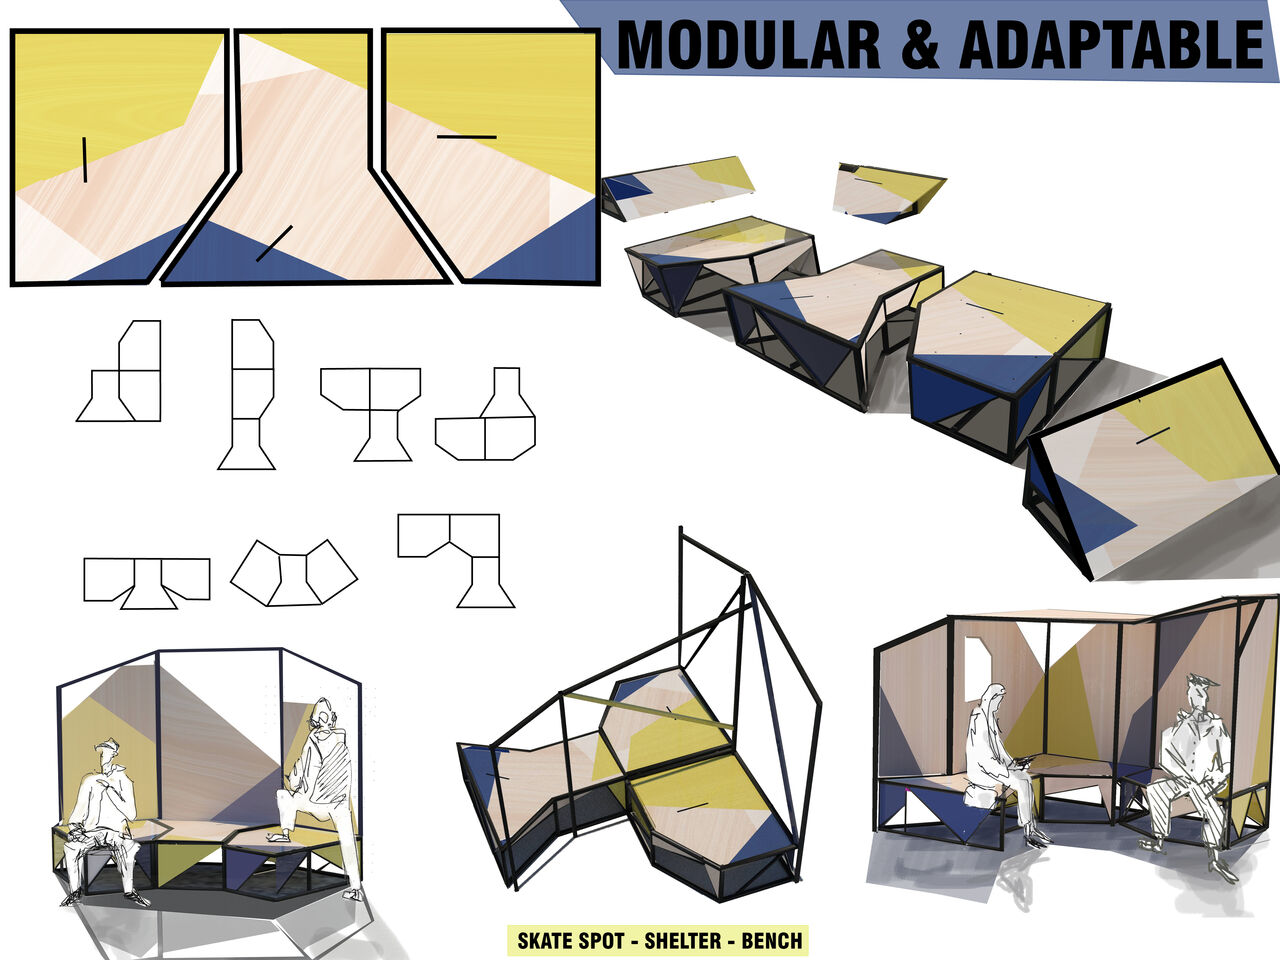 Plans and designs for skateboarding structures that can slot into existing benches around the museum in a modular fashion.